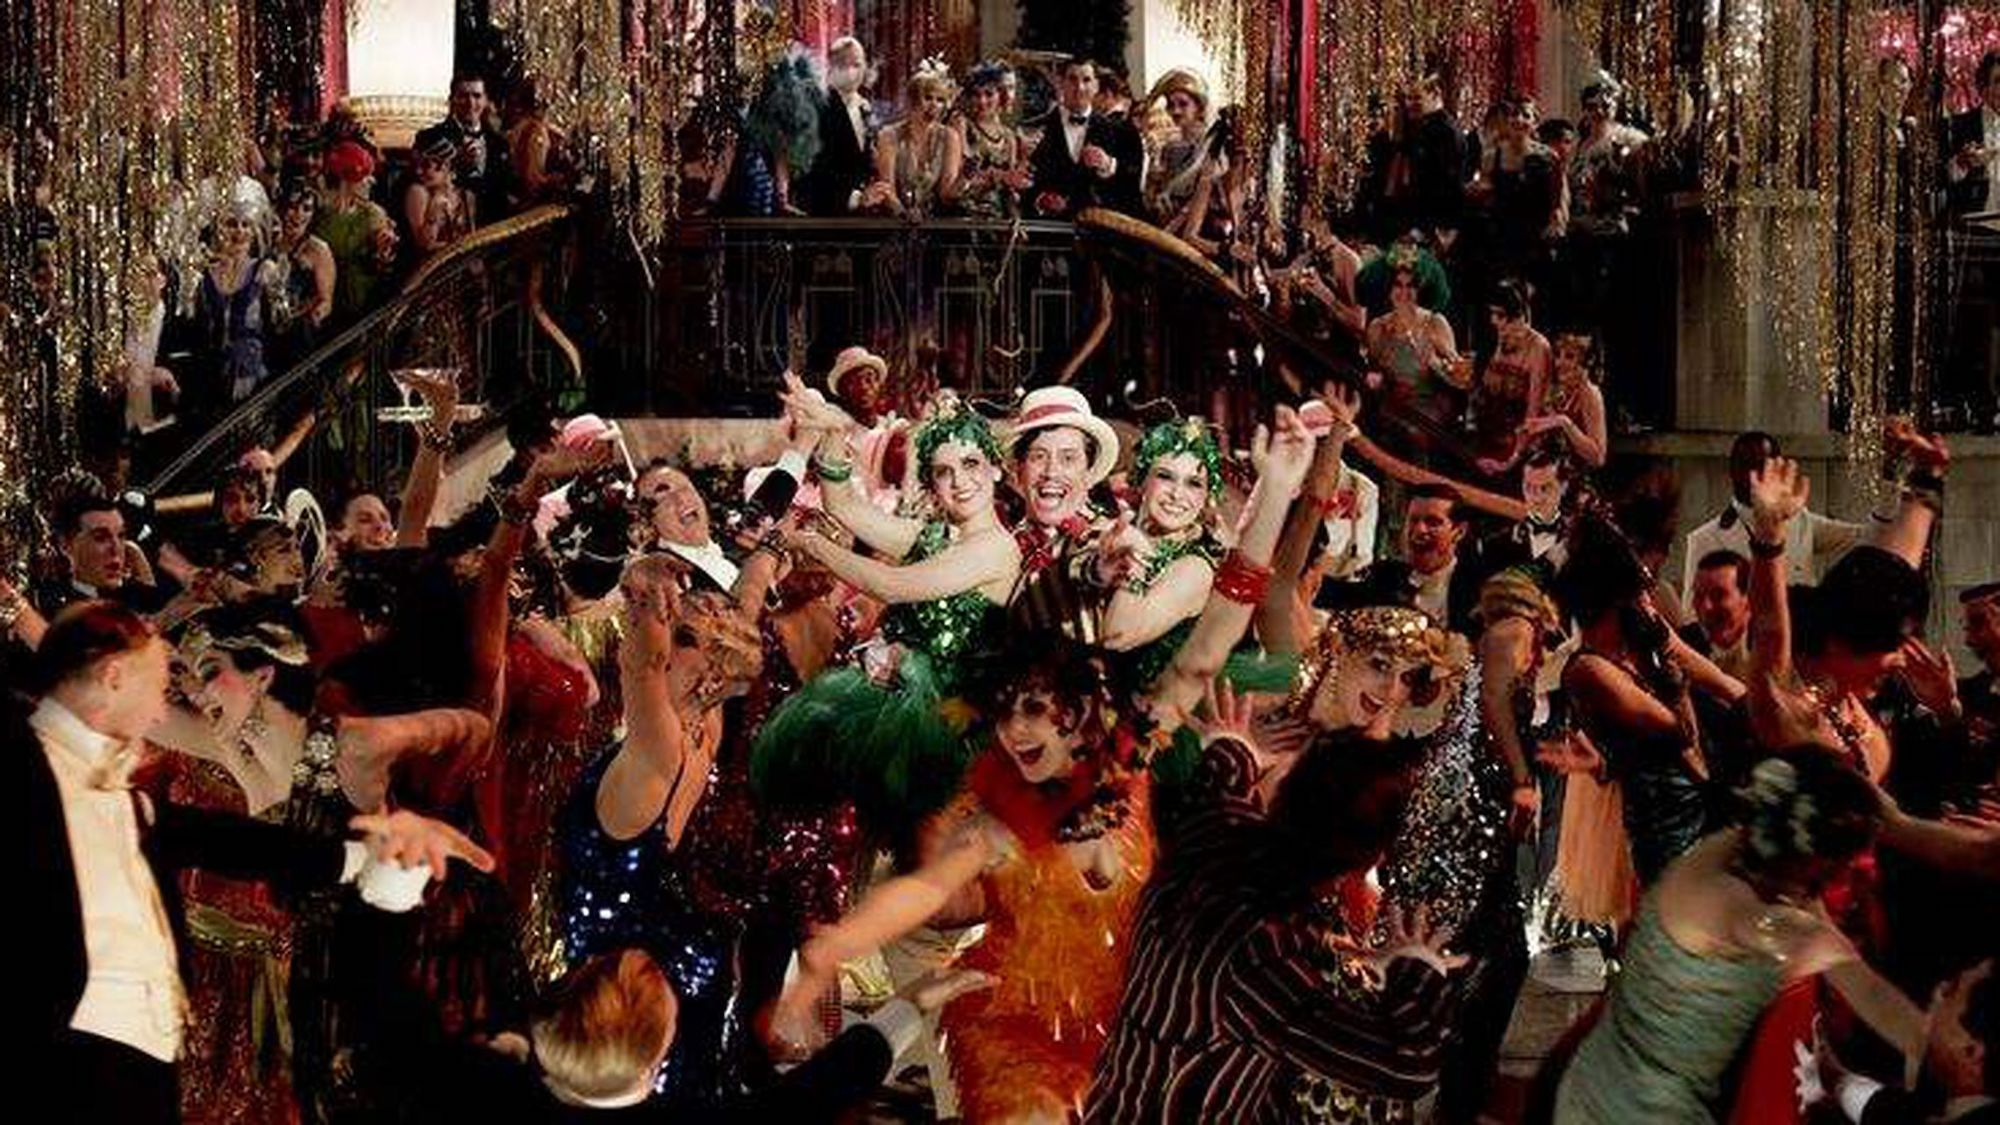 The great gatsby 2013 party scene